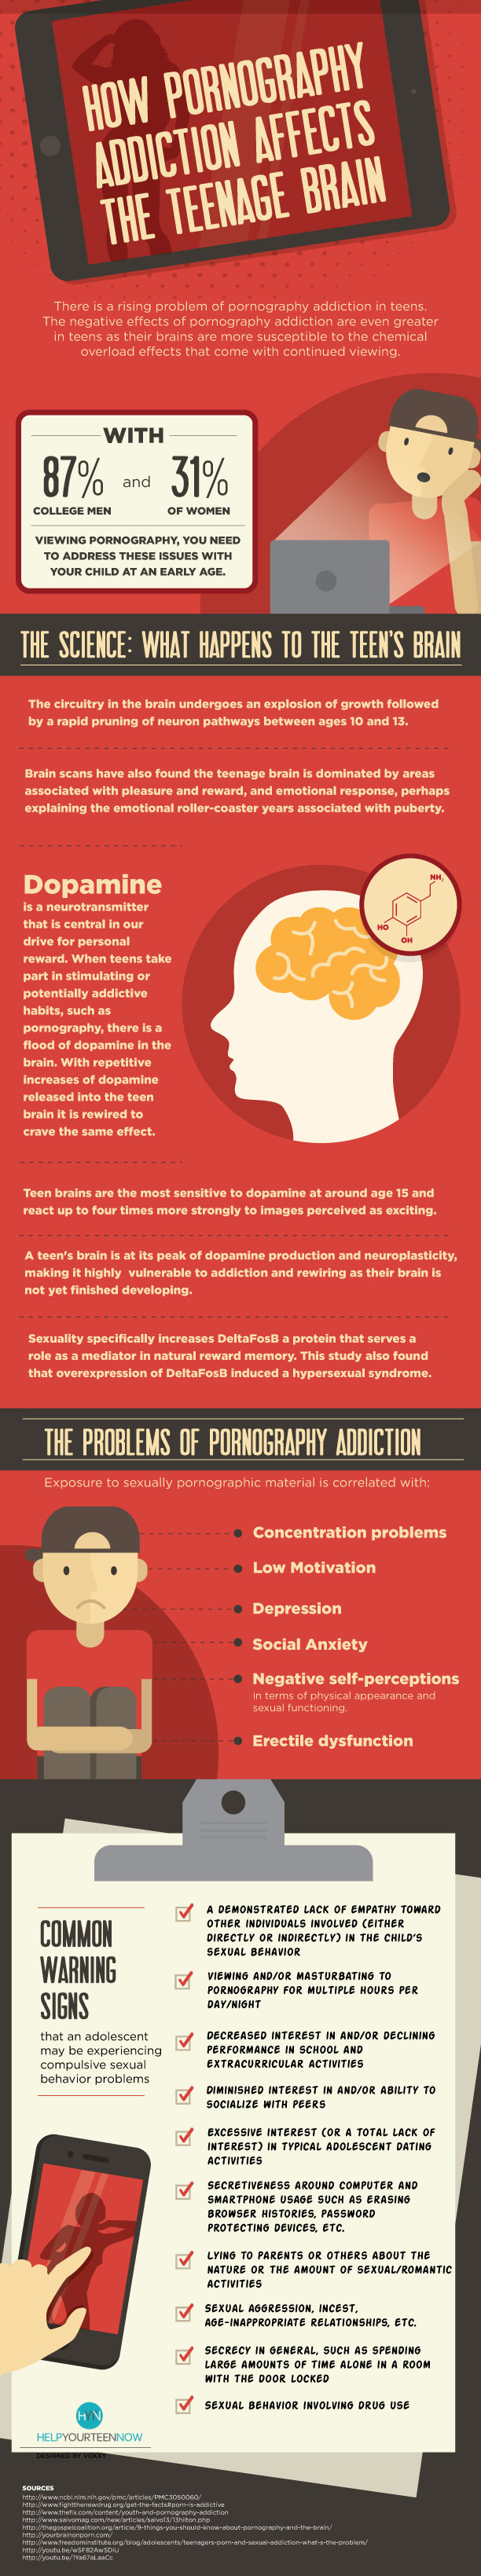 The Problem Of Teens' Pornography Addiction - Infographic